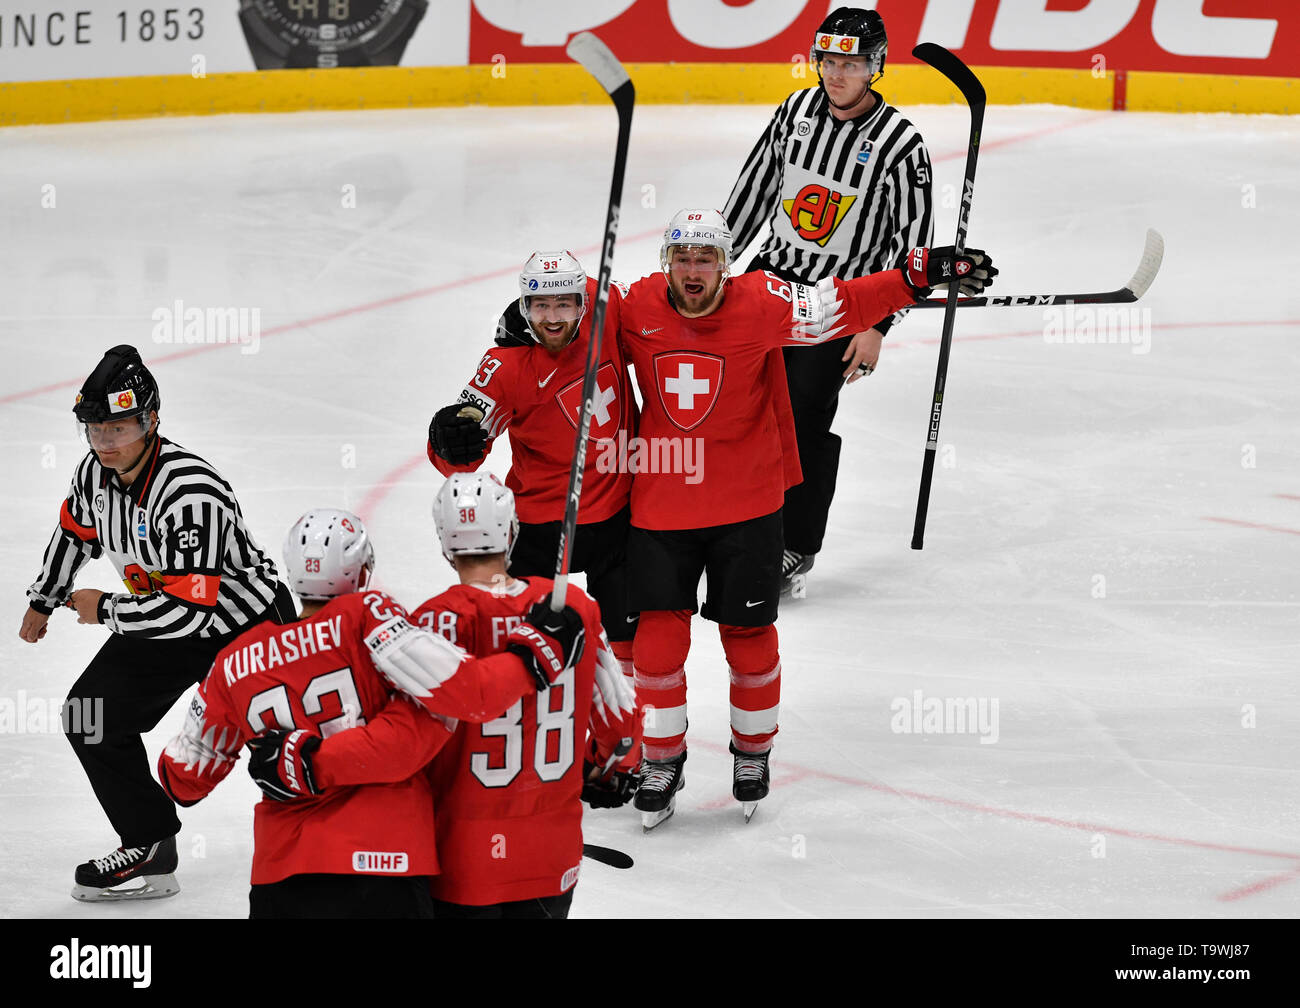 Bratislava, Slovakia. 21st May, 2019. L-R Philipp Kurashev, Lukas Frick, Lino Martschini and Tristan Scherwey (all SUI) celebrate Frick's goal during the match between Czech Republic and Switzerland within the 2019 IIHF World Championship in Bratislava, Slovakia, on May 21, 2019. Credit: Vit Simanek/CTK Photo/Alamy Live News Stock Photo